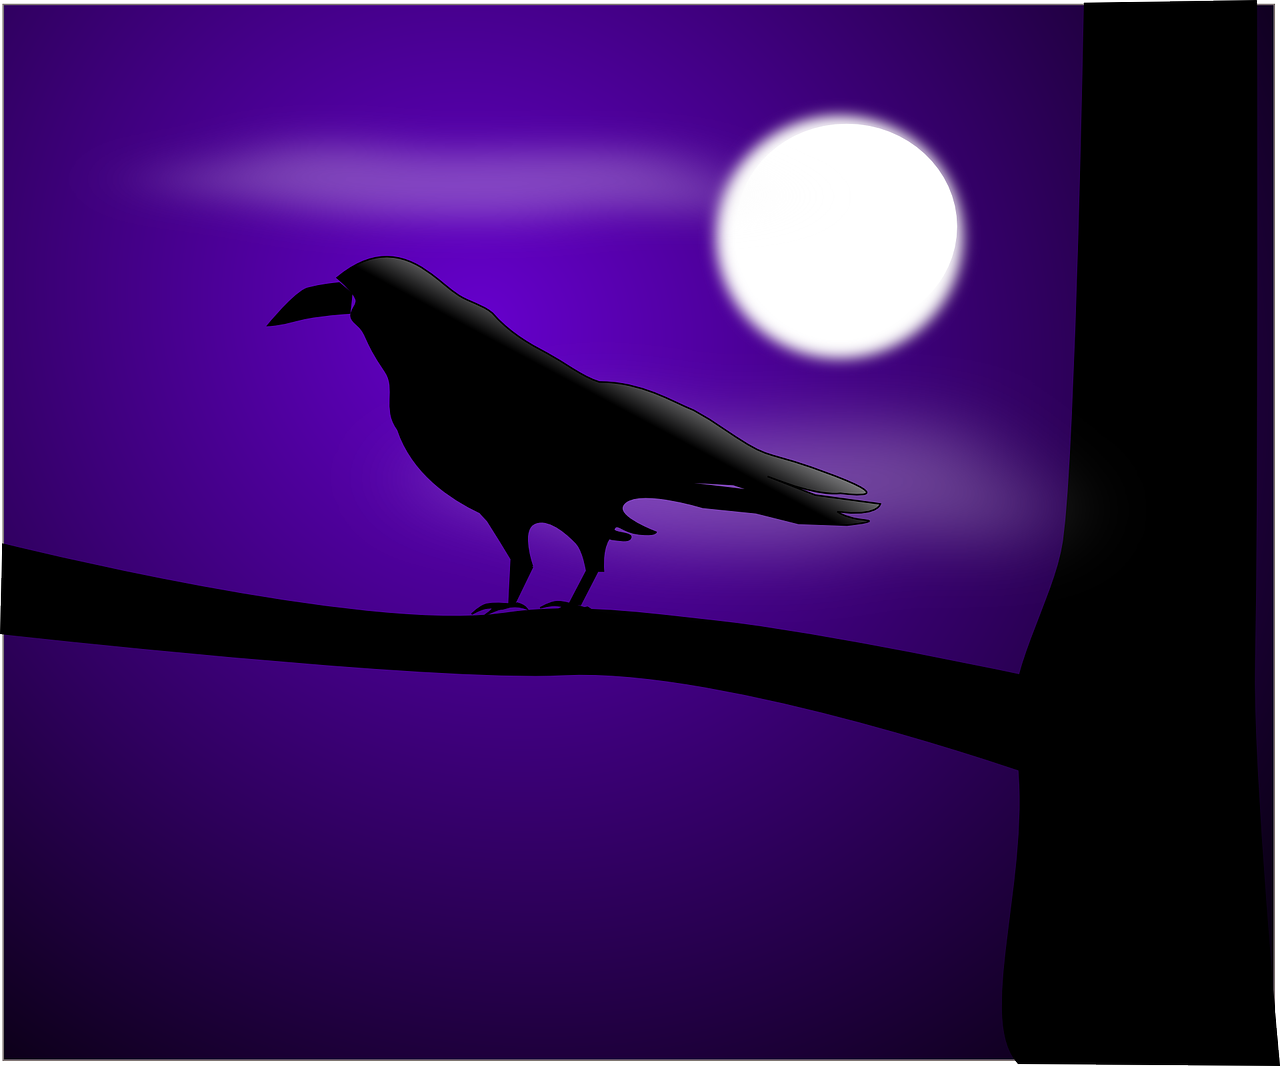 How to draw night, night landscape 6